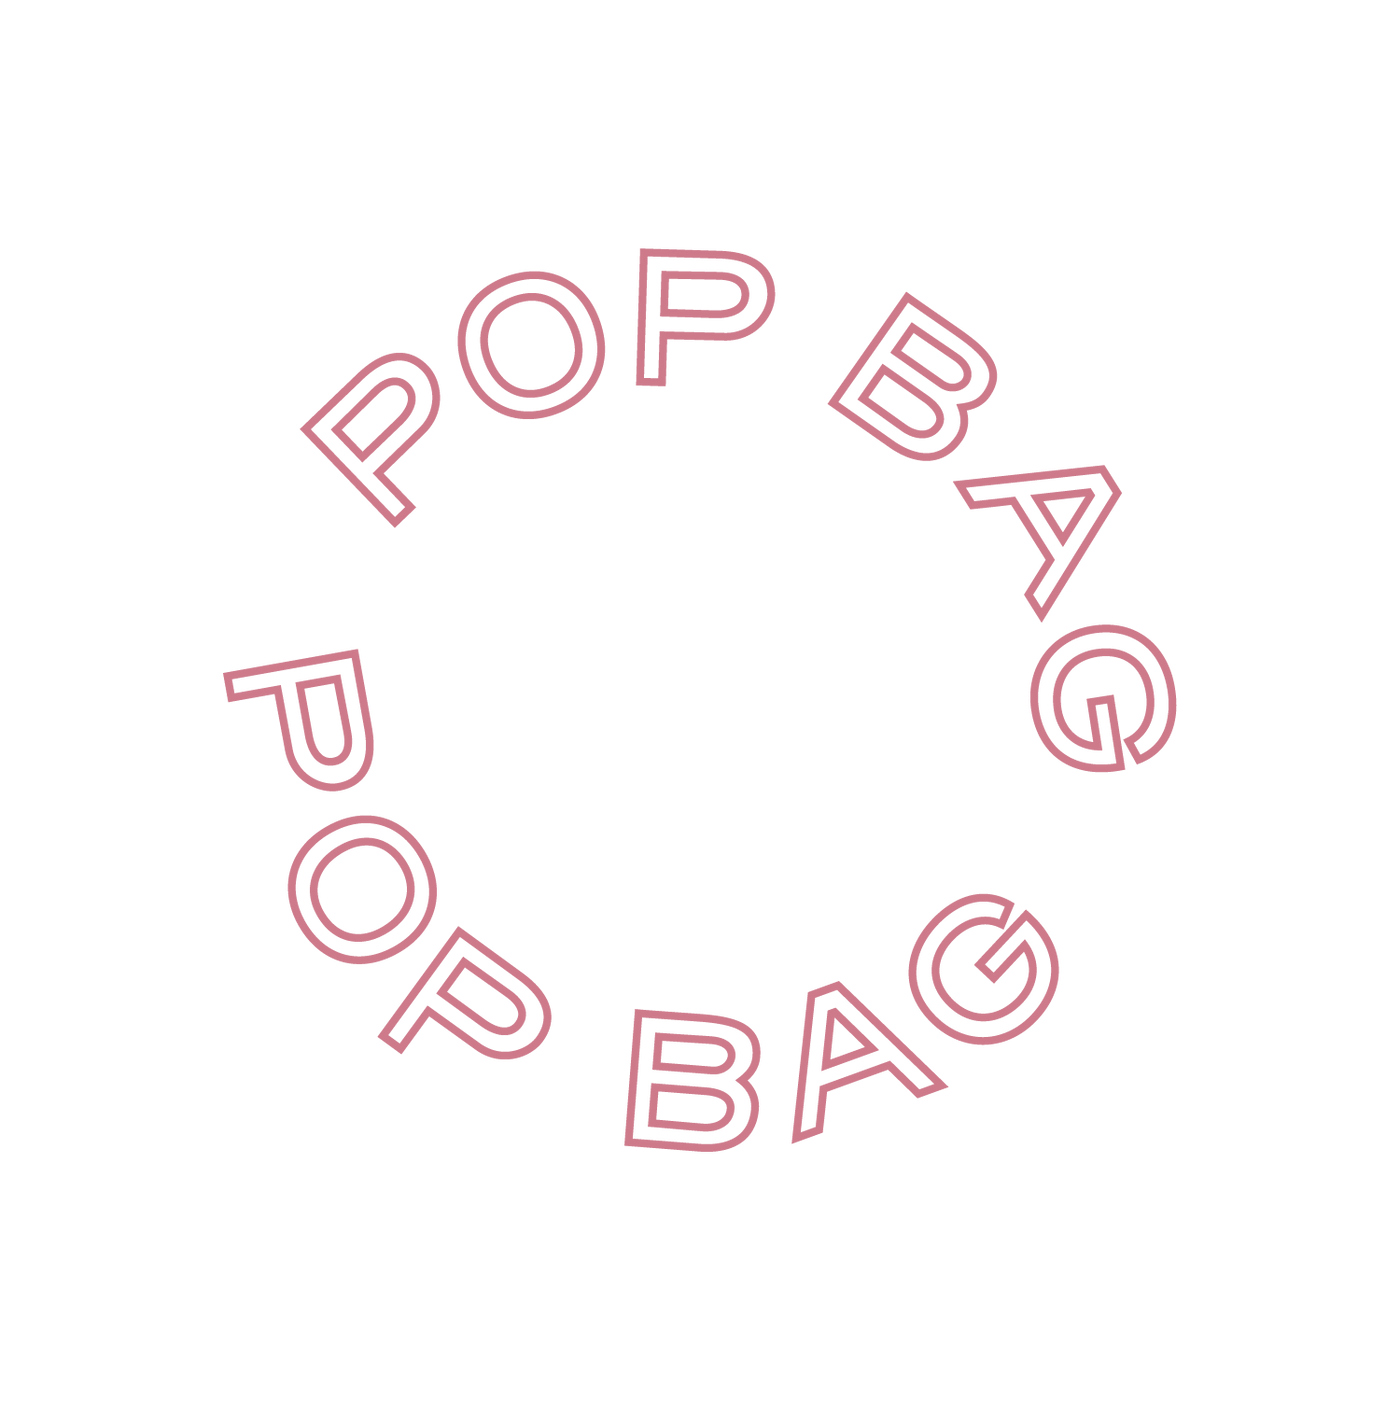 PERSONALIZE YOUR MESSAGE - Pop Bag USA